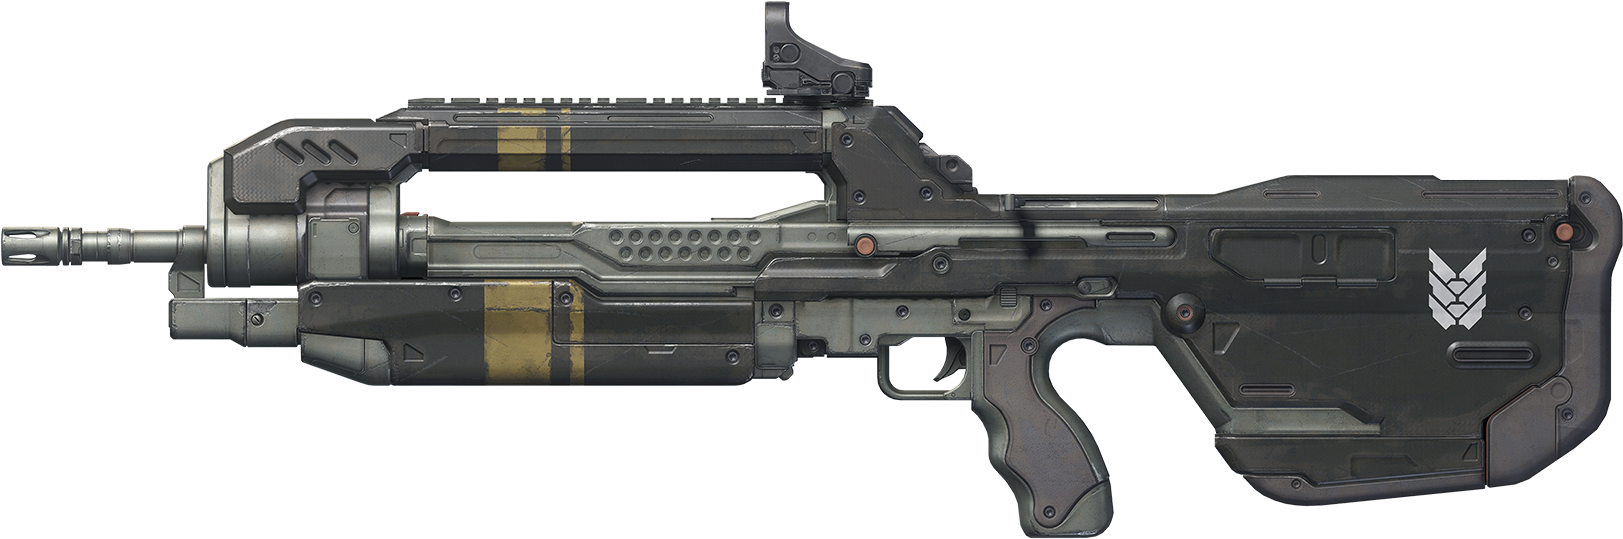 Br85 - Halo 5 Battle Rifle Png Clipart (1680x580), Png Download